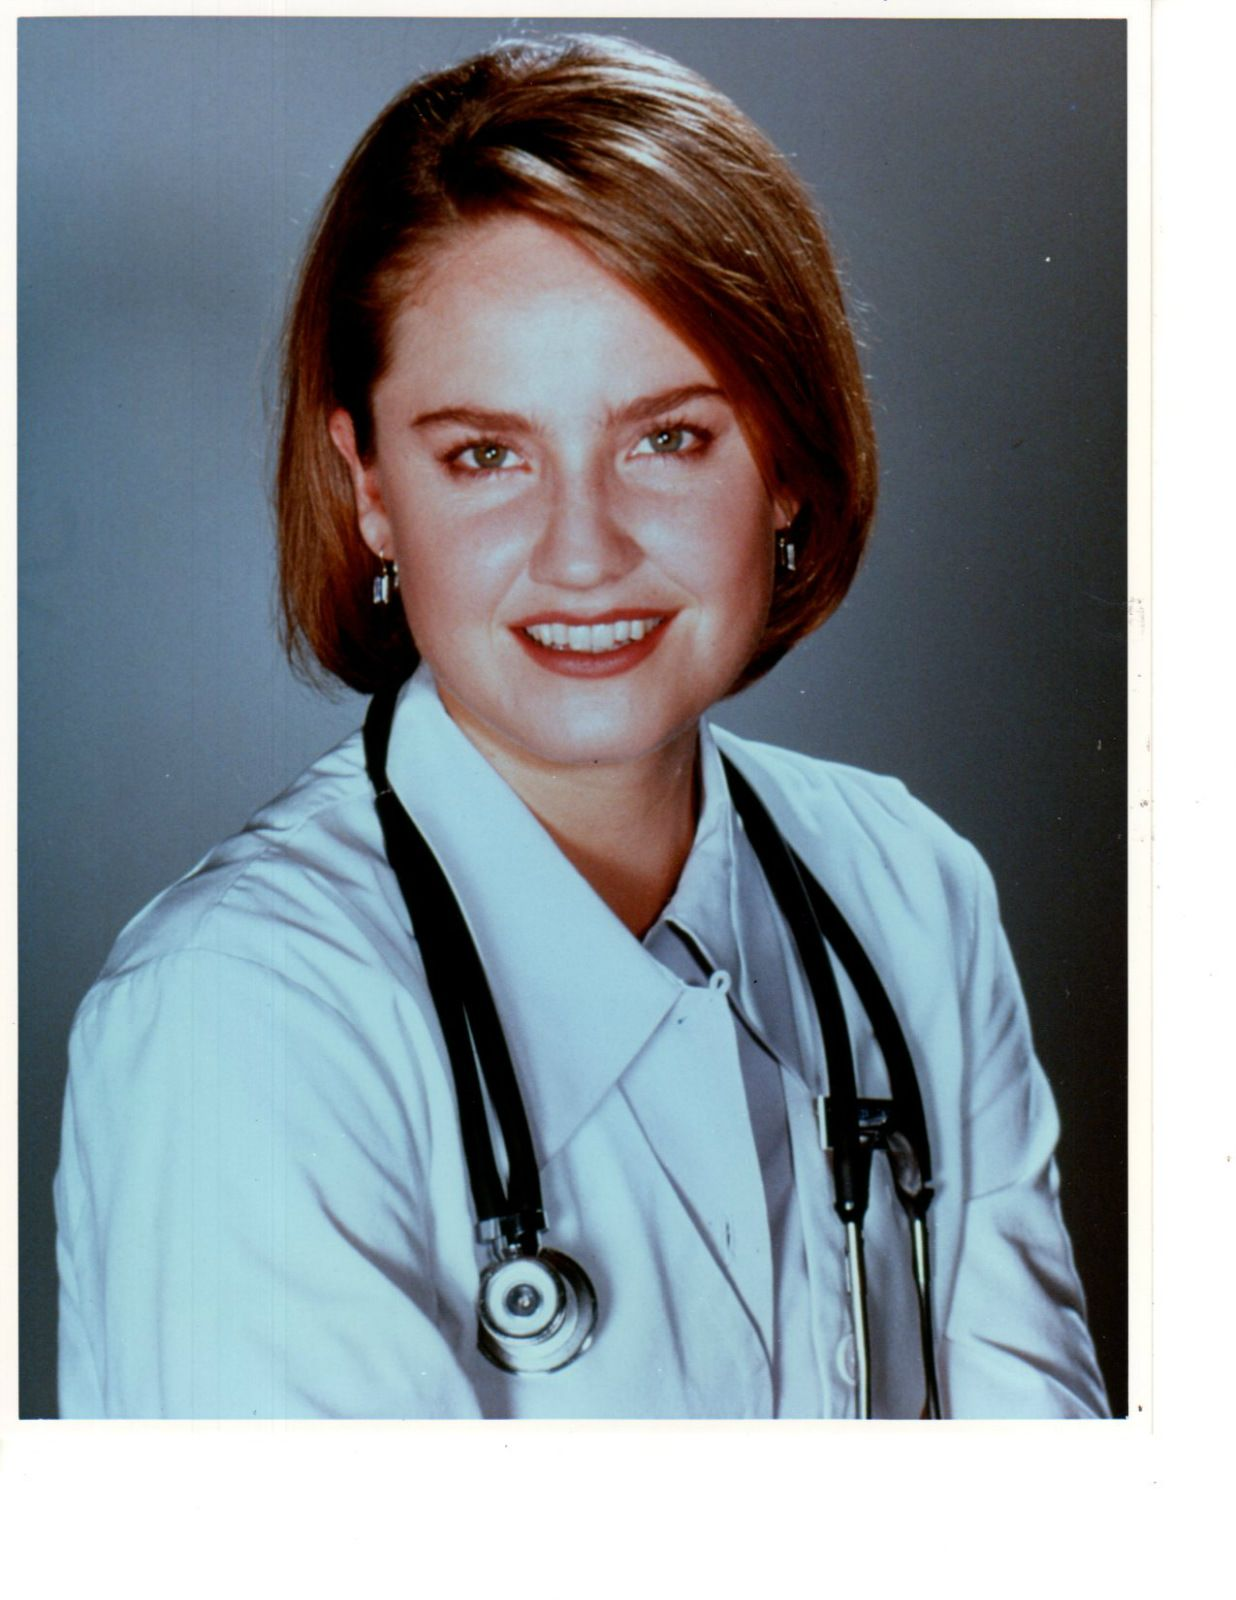 sherry stringfield scientologysherry stringfield er, sherry stringfield, sherry stringfield instagram, sherry stringfield imdb, sherry stringfield net worth, sherry stringfield scientology, sherry stringfield hot, sherry stringfield measurements, sherry stringfield guiding light, sherry stringfield under the dome, sherry stringfield images, sherry stringfield movies and tv shows, sherry stringfield photos, sherry stringfield larry joseph, sherry stringfield urgences, sherry stringfield smoking